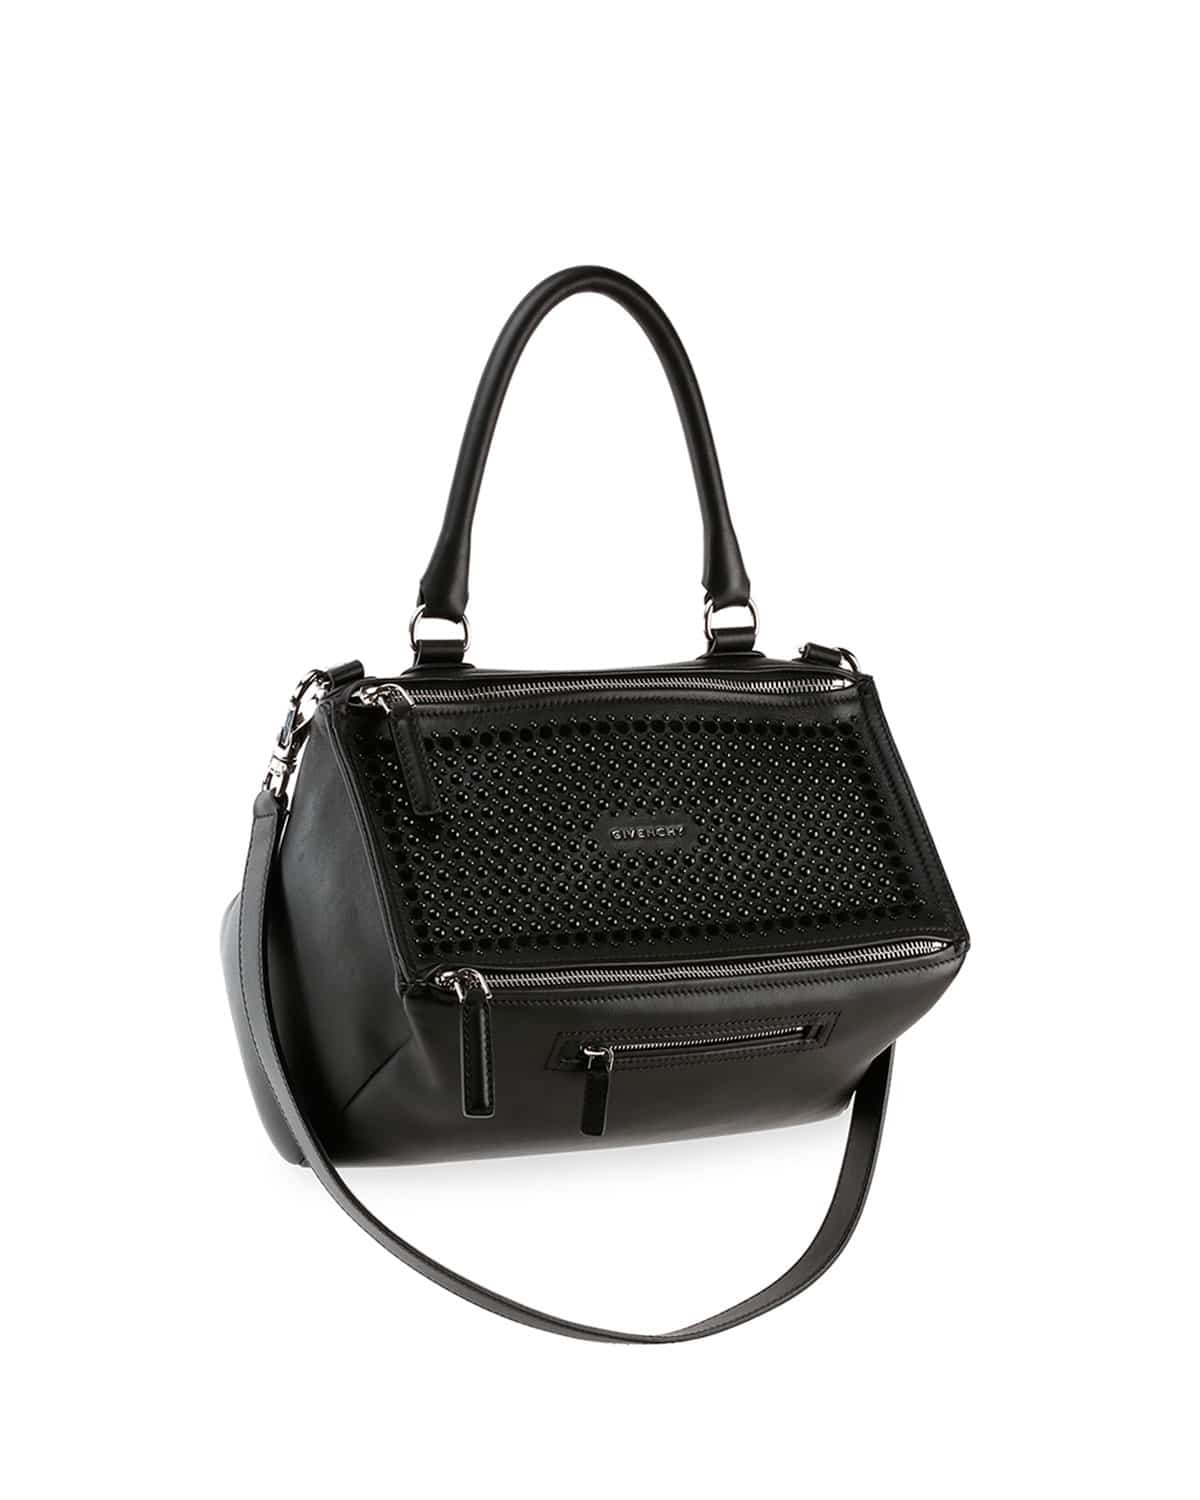 Givenchy Fall/Winter 2015 Bag Collection Featuring Bi ...